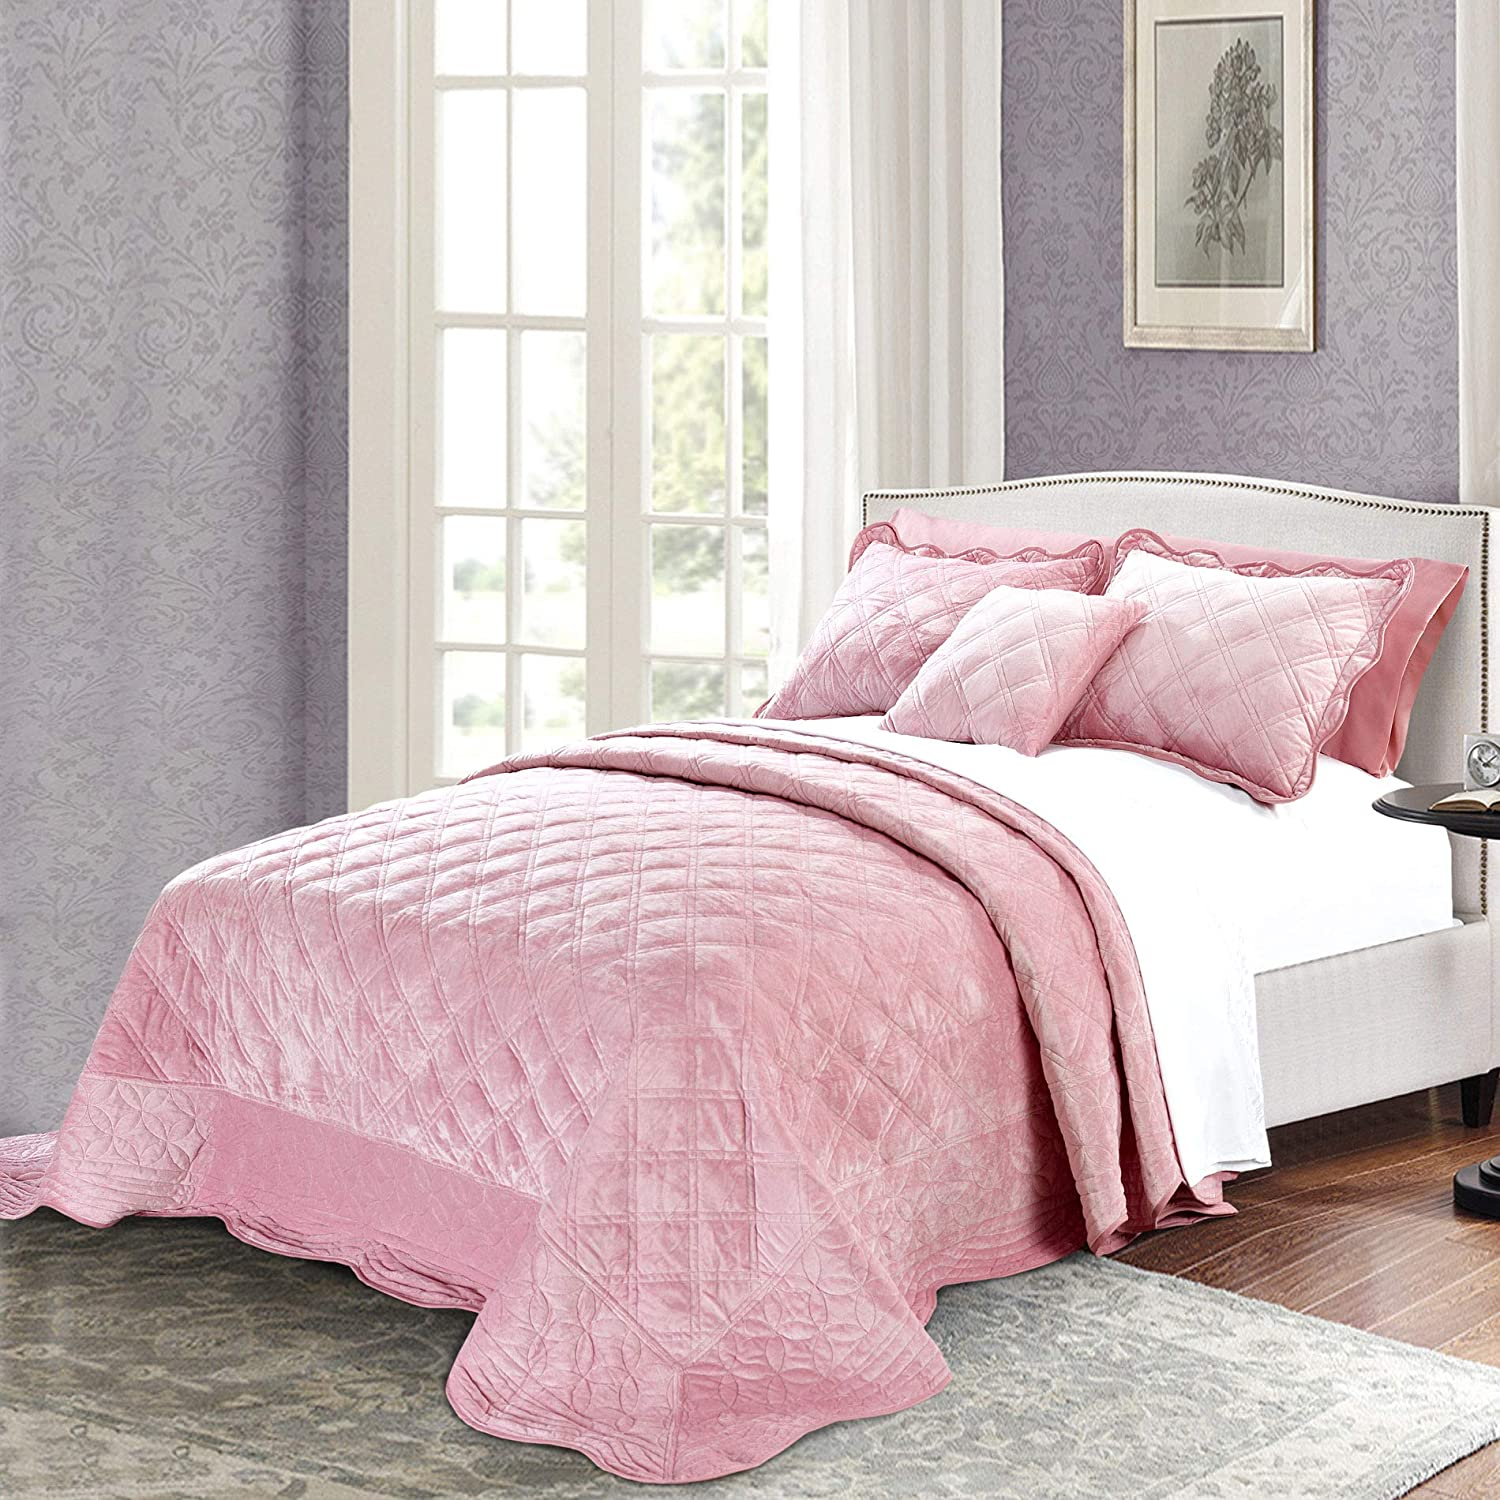 Serenta Super Soft Microplush Quilted 4 Piece Bedspread Set Queen Pink Home Kitchen